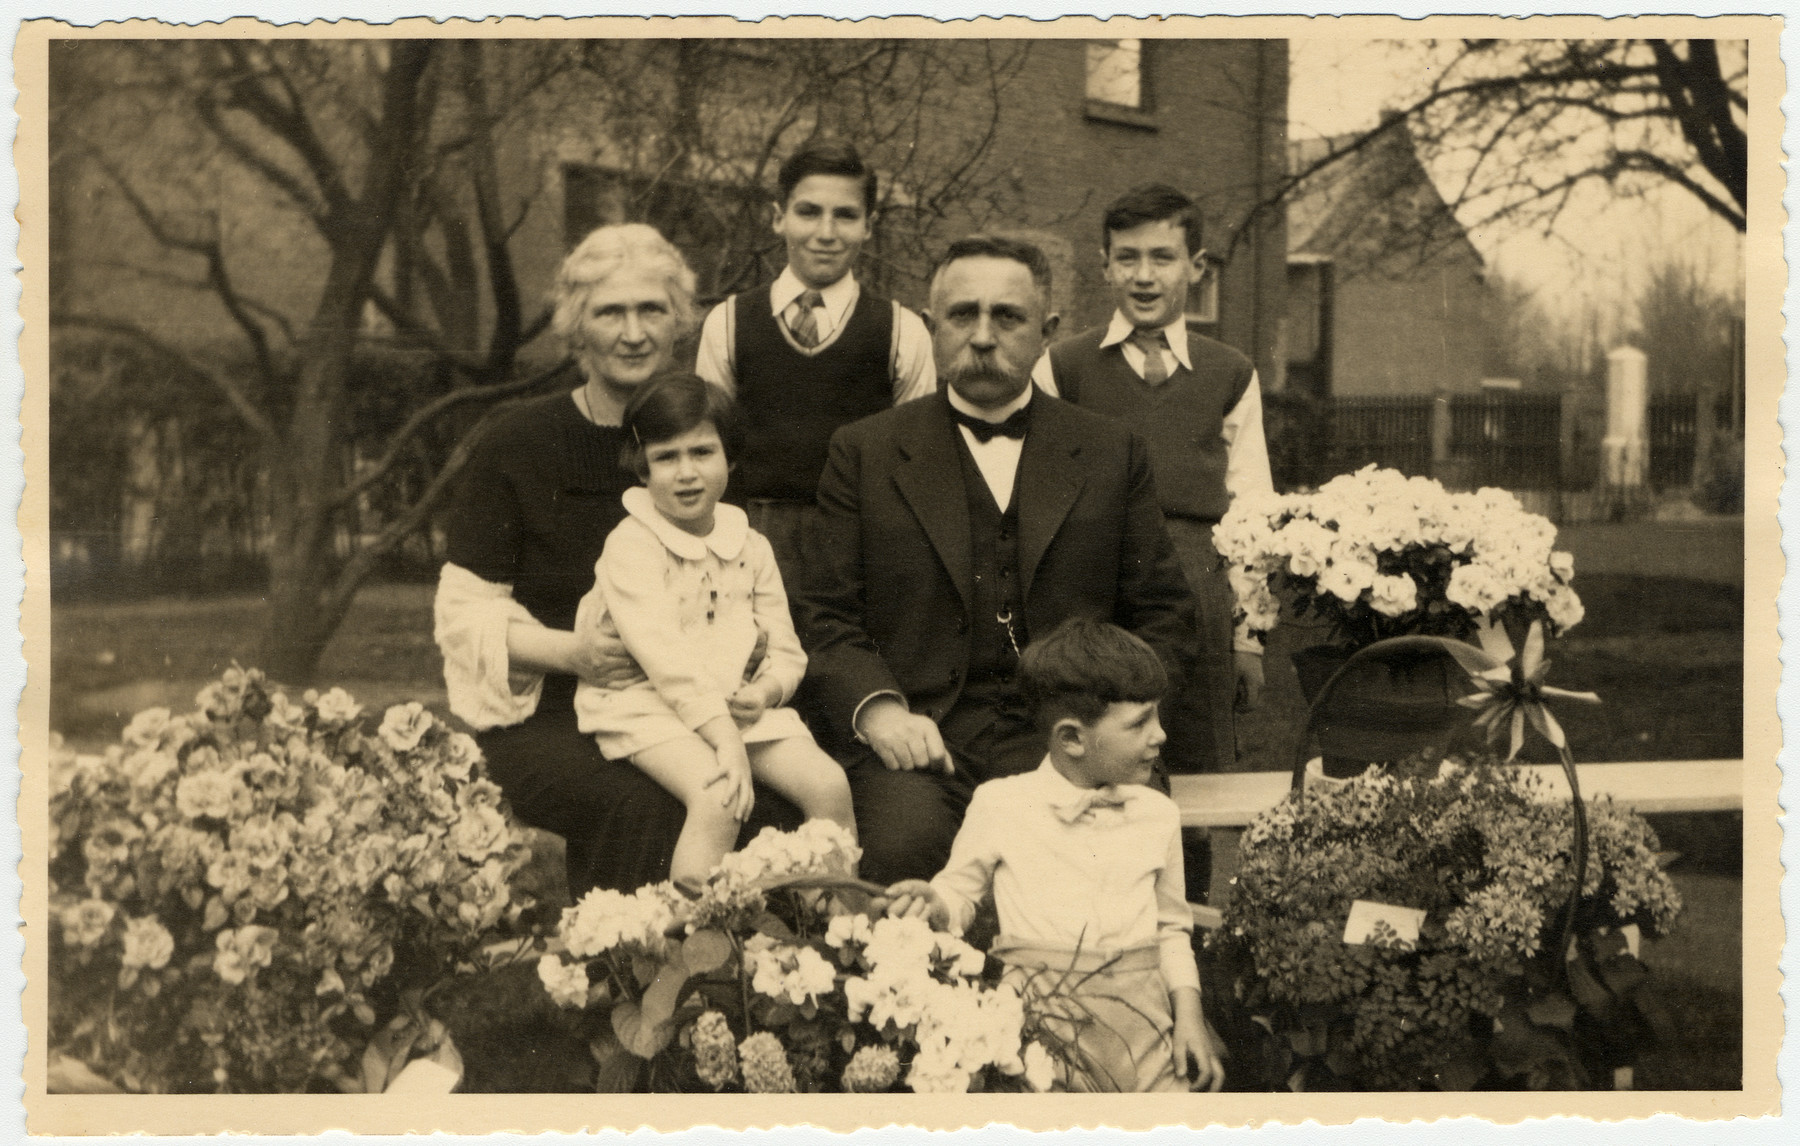 The Vromen and Van Dam families celebrate the 60th birthday of Isidoor van Dam.  Pictured are Clara van Dam holding Clary Vromen and Isidoor van Dam with Jaap Vromen.  In the back are two older grandchildren.